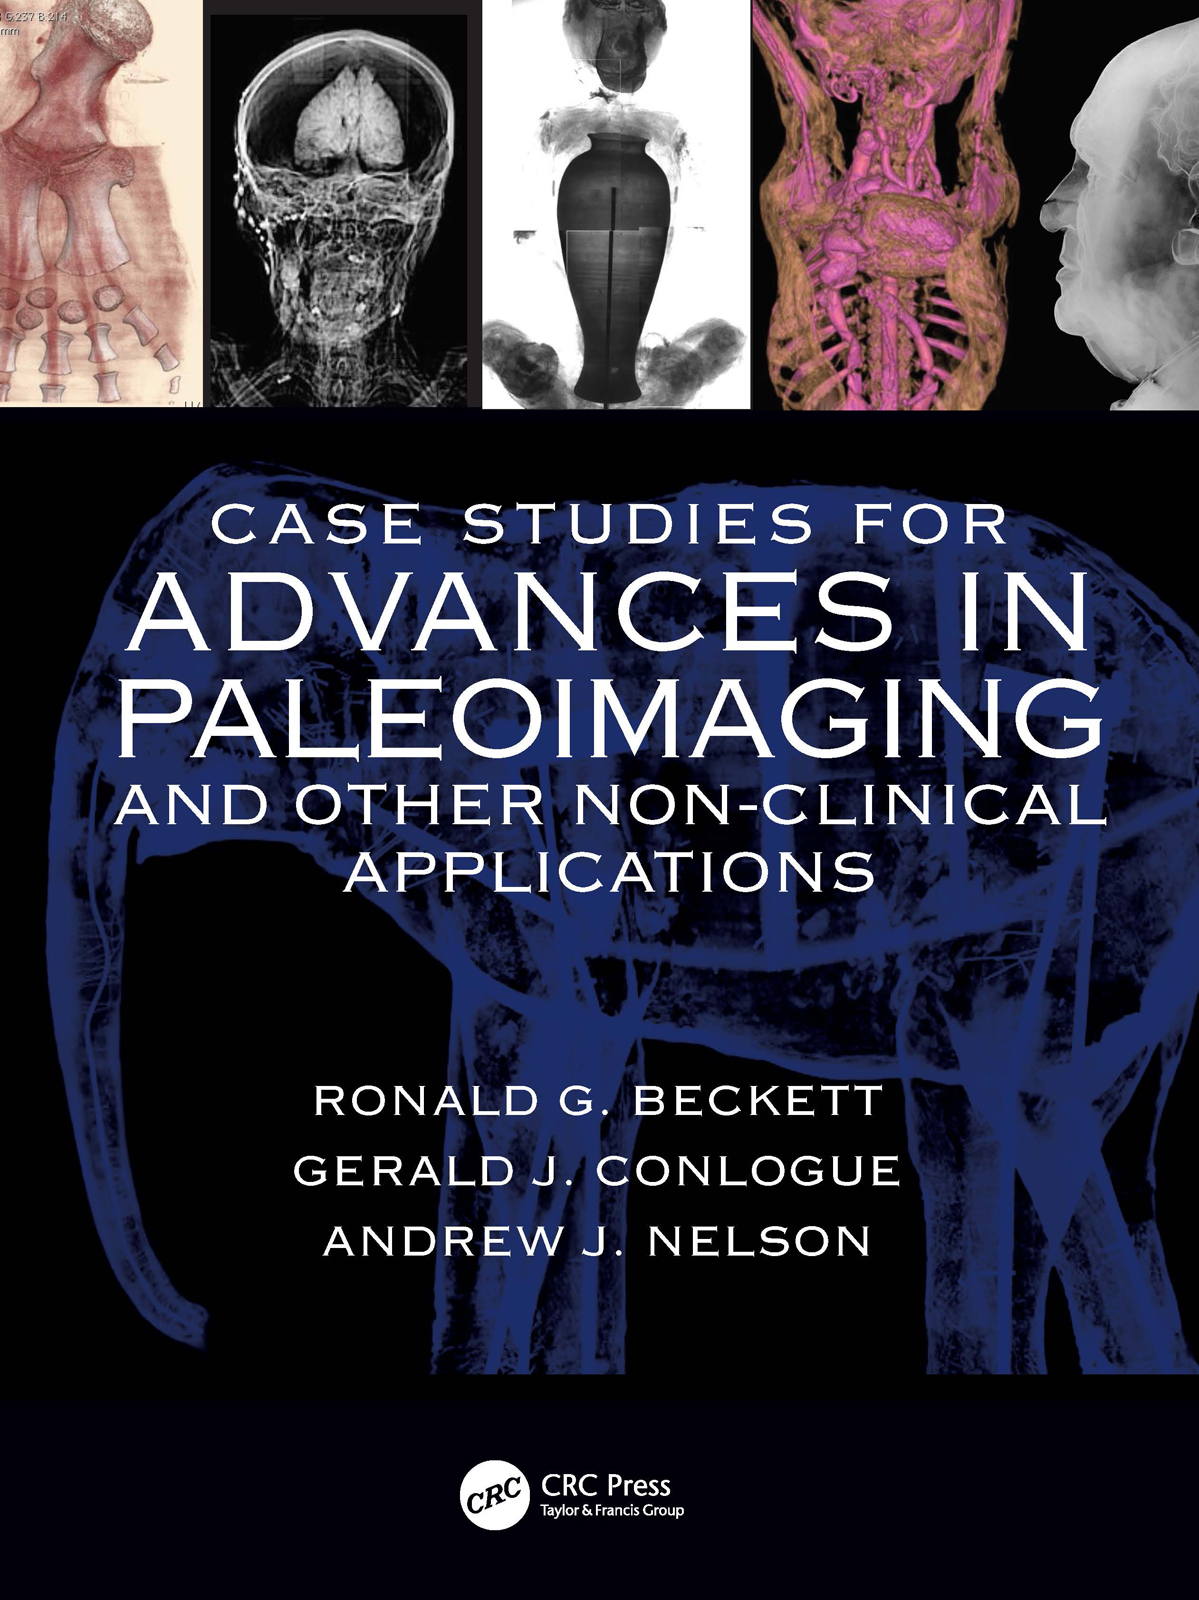 Case Studies for Advances in Paleoimaging and Other Non-Clinical Applications